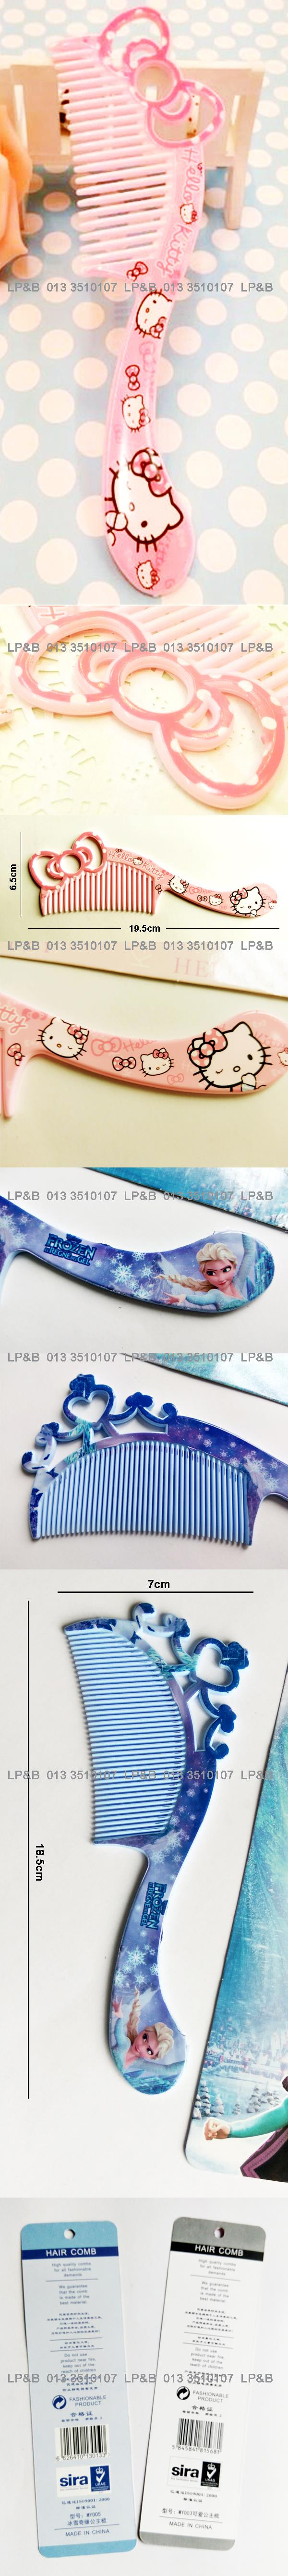 Frozen or Hello Kitty Girls Hair Brush Plastic Comb